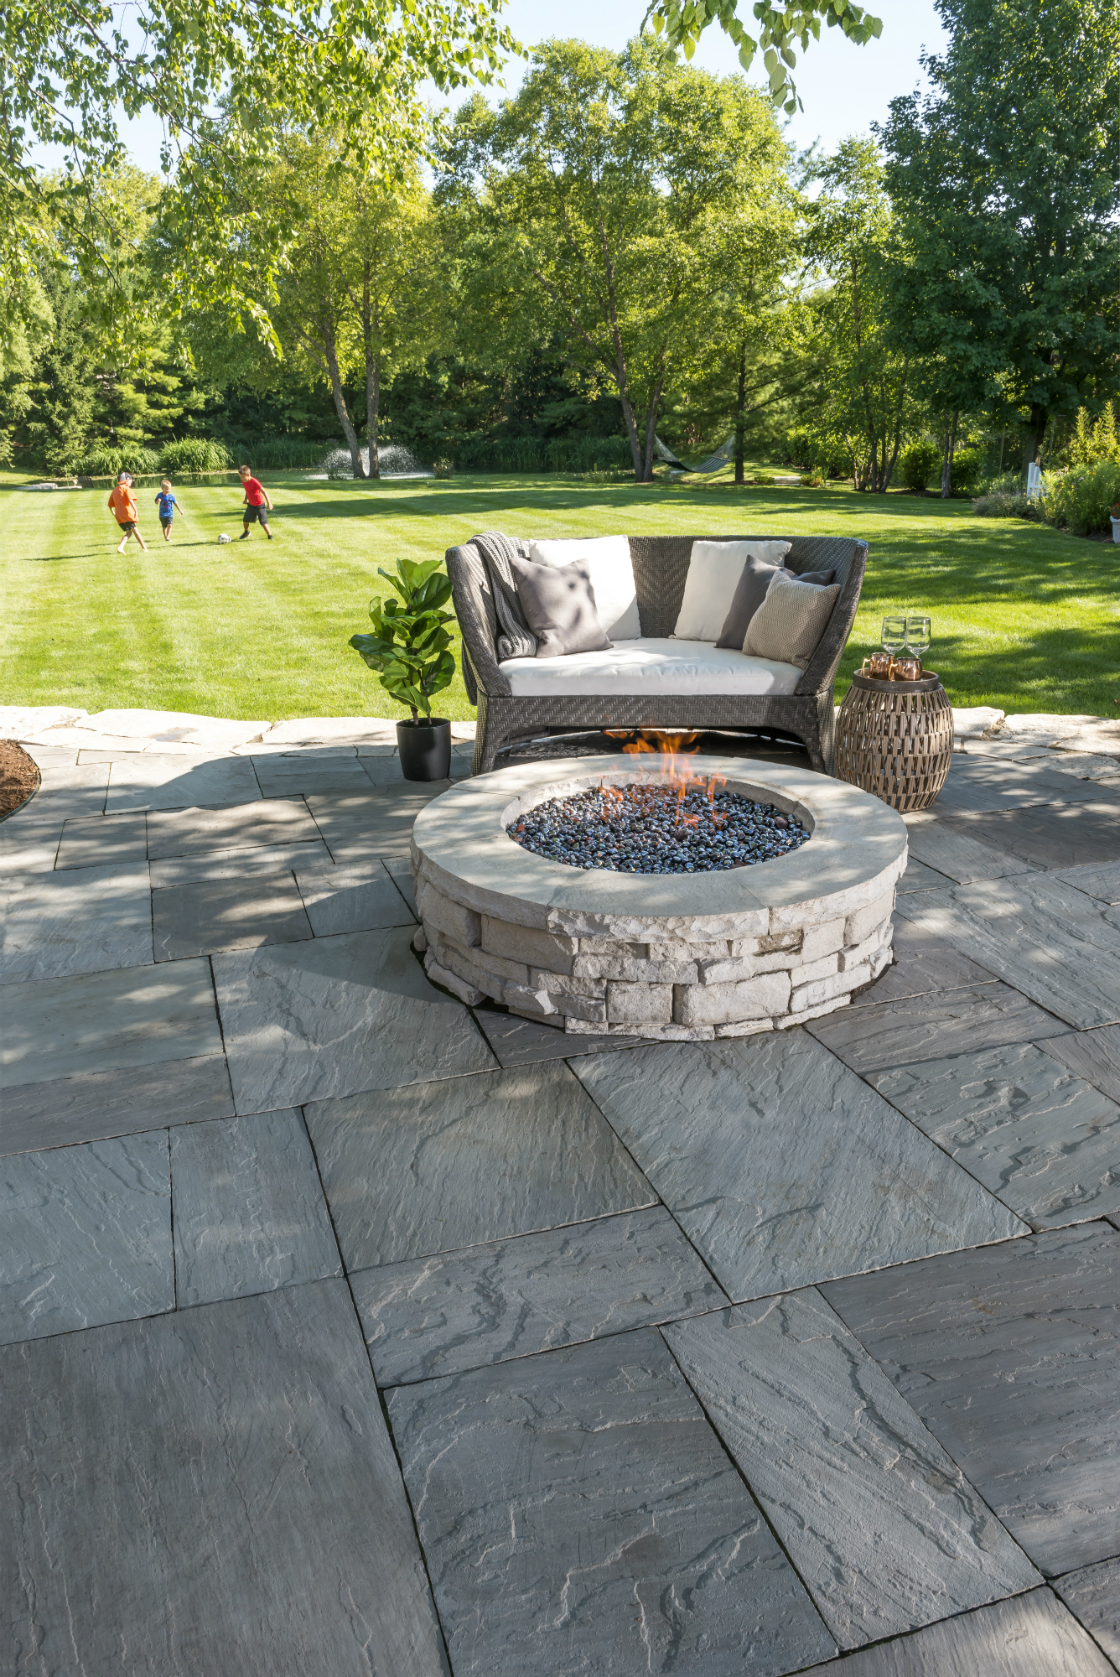 Why Hiring a Professional Excavation Team for your Westford, MA, Landscape Project is Essential